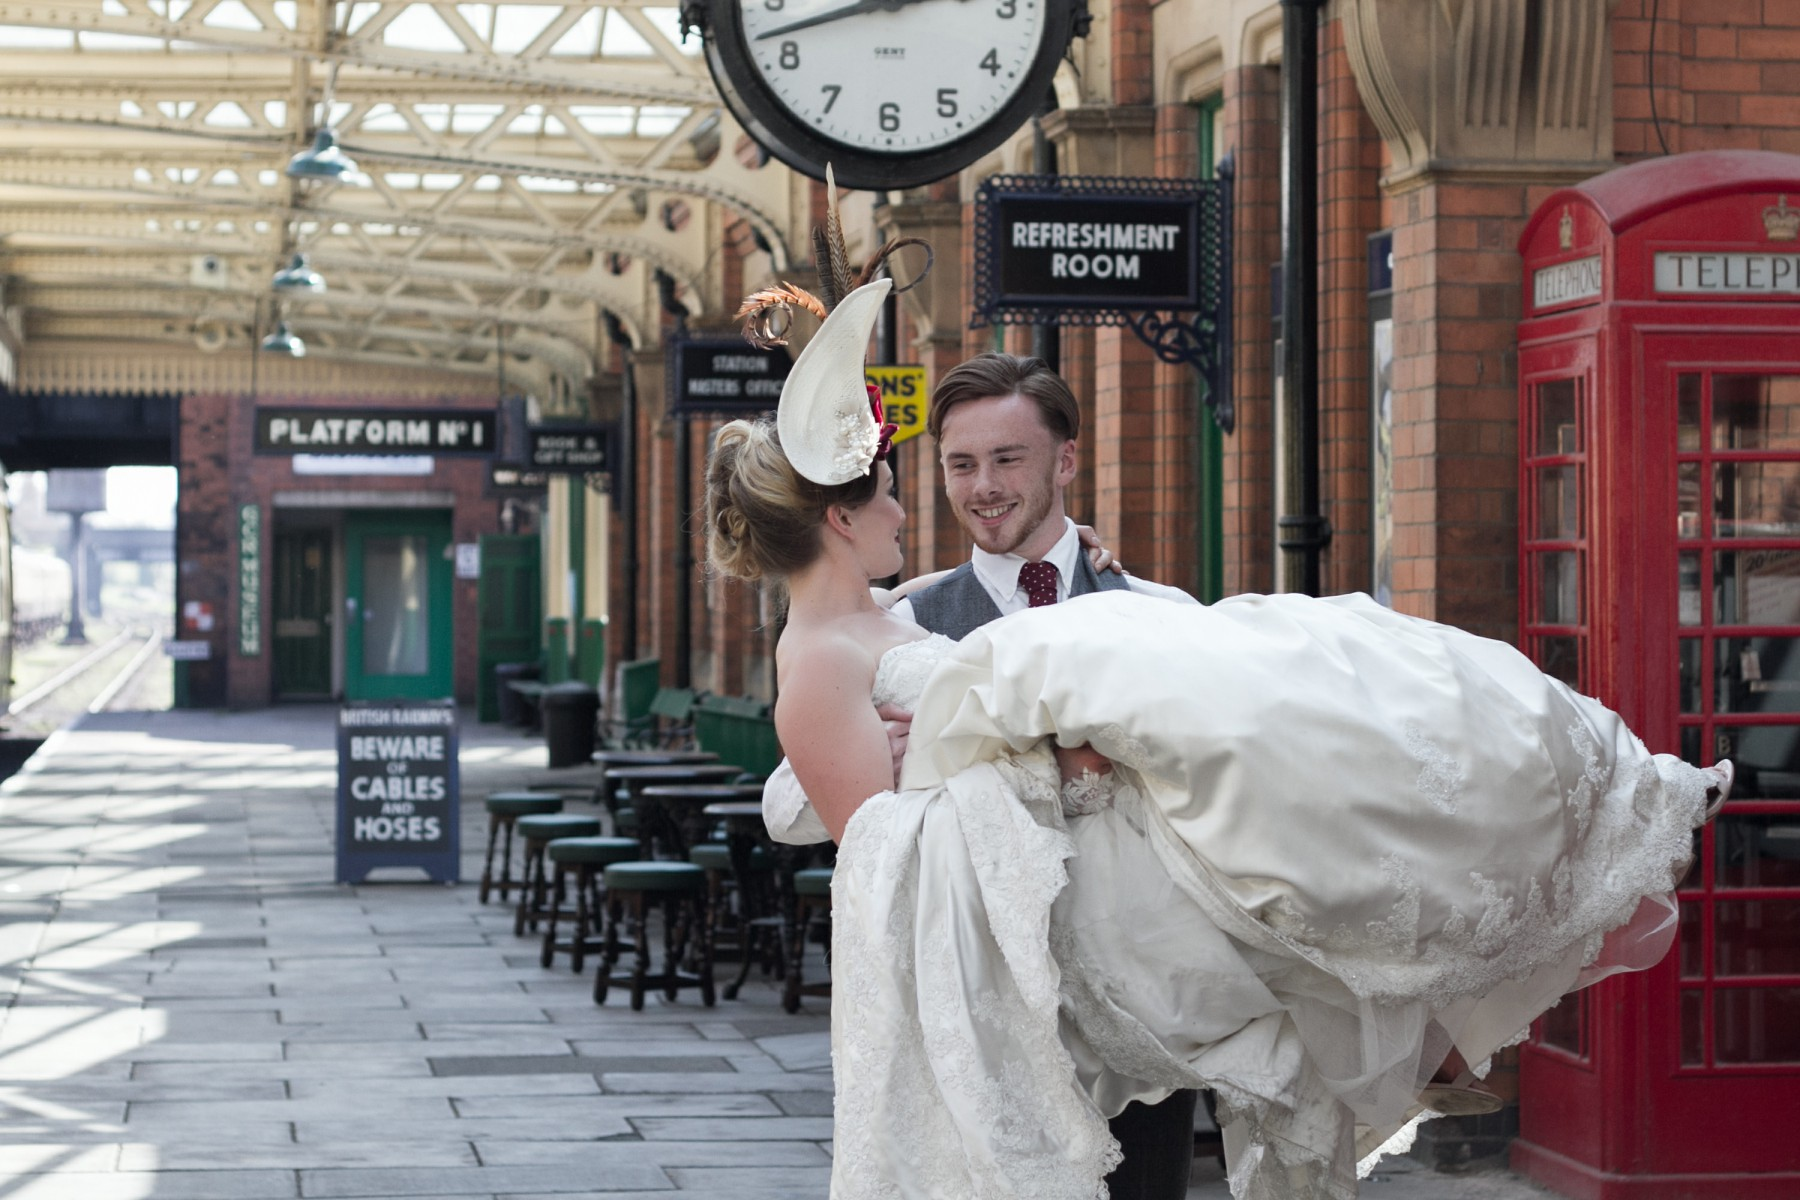 Iso Elegant Photography - Leicester wedding network - Railway wedding - vintage wedding 27